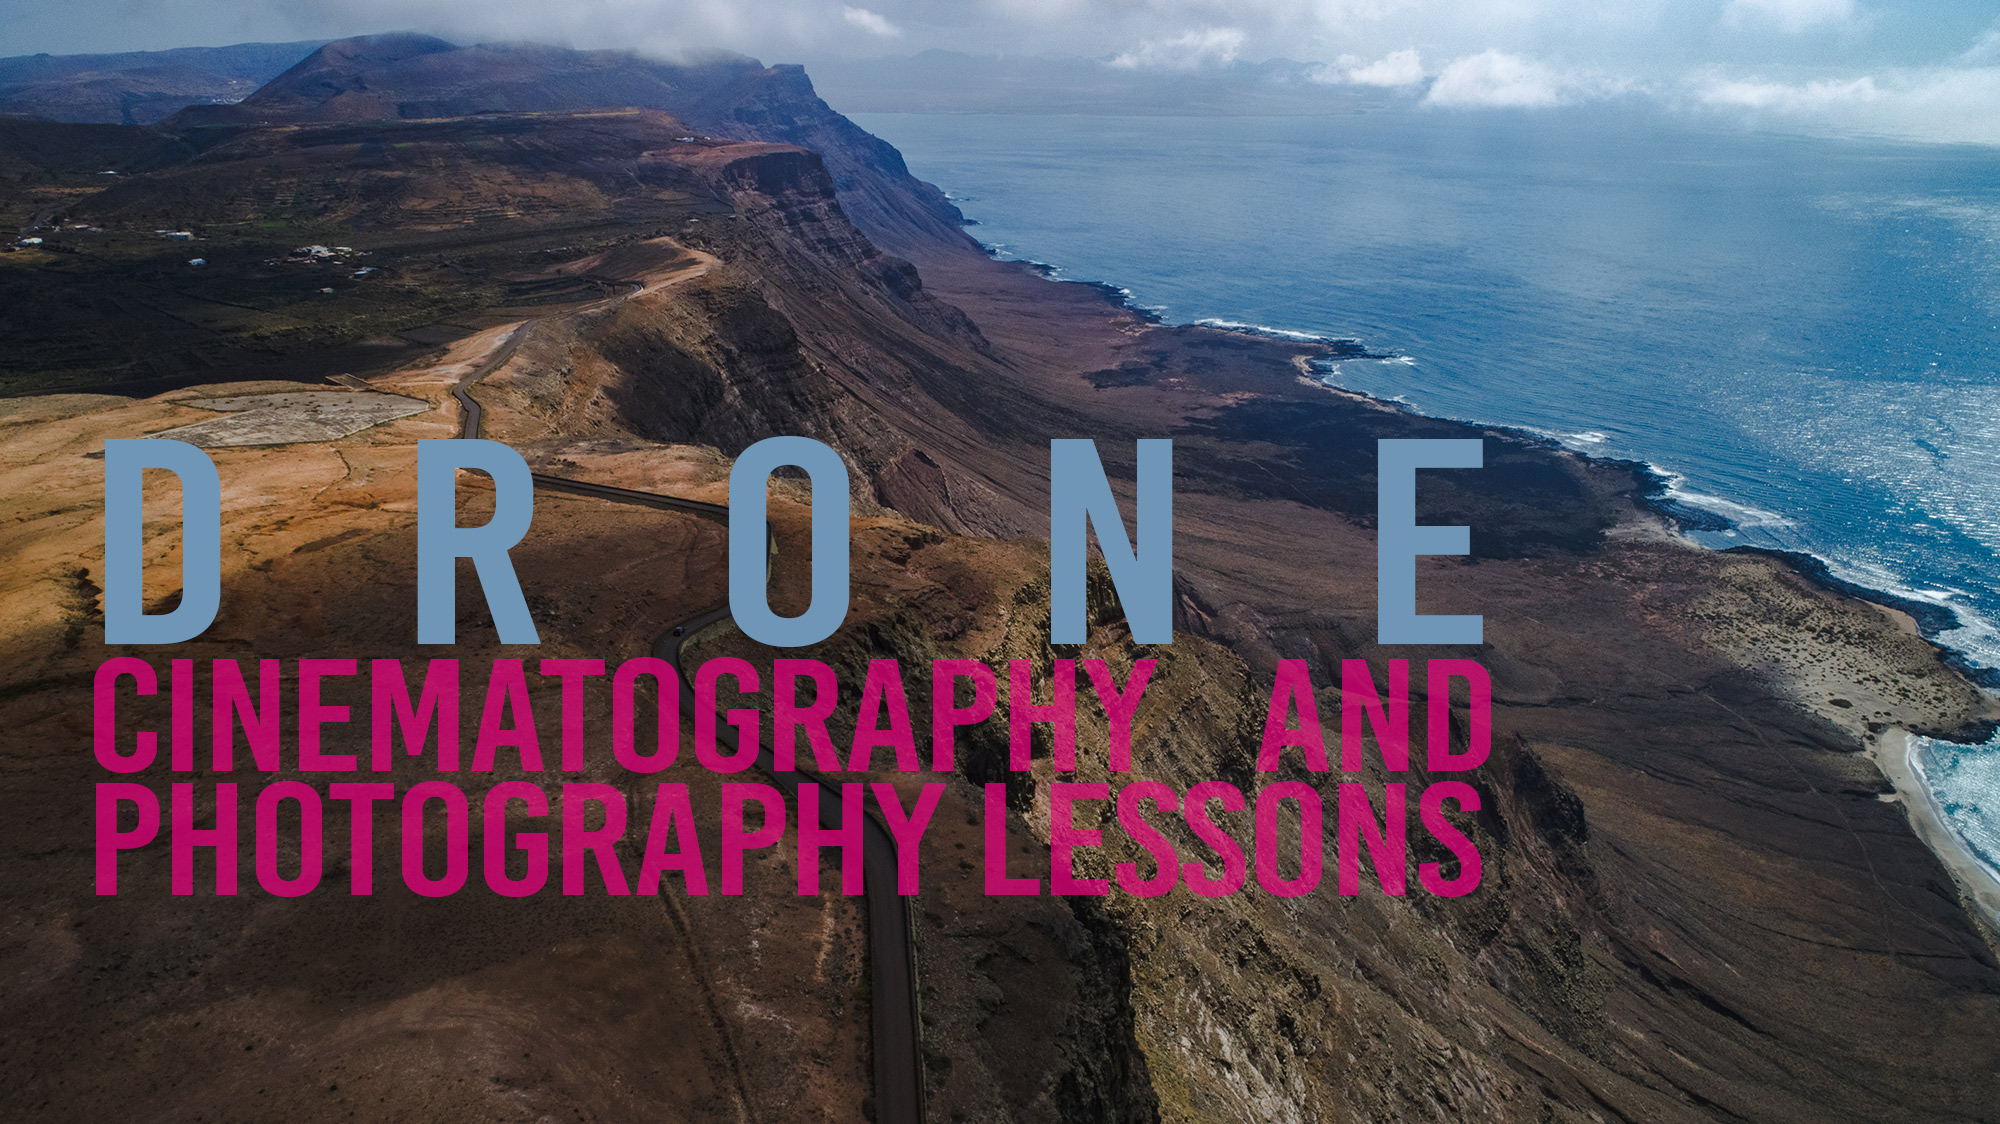 Drone-Cinematography-and-Photography-Lessons.jpg